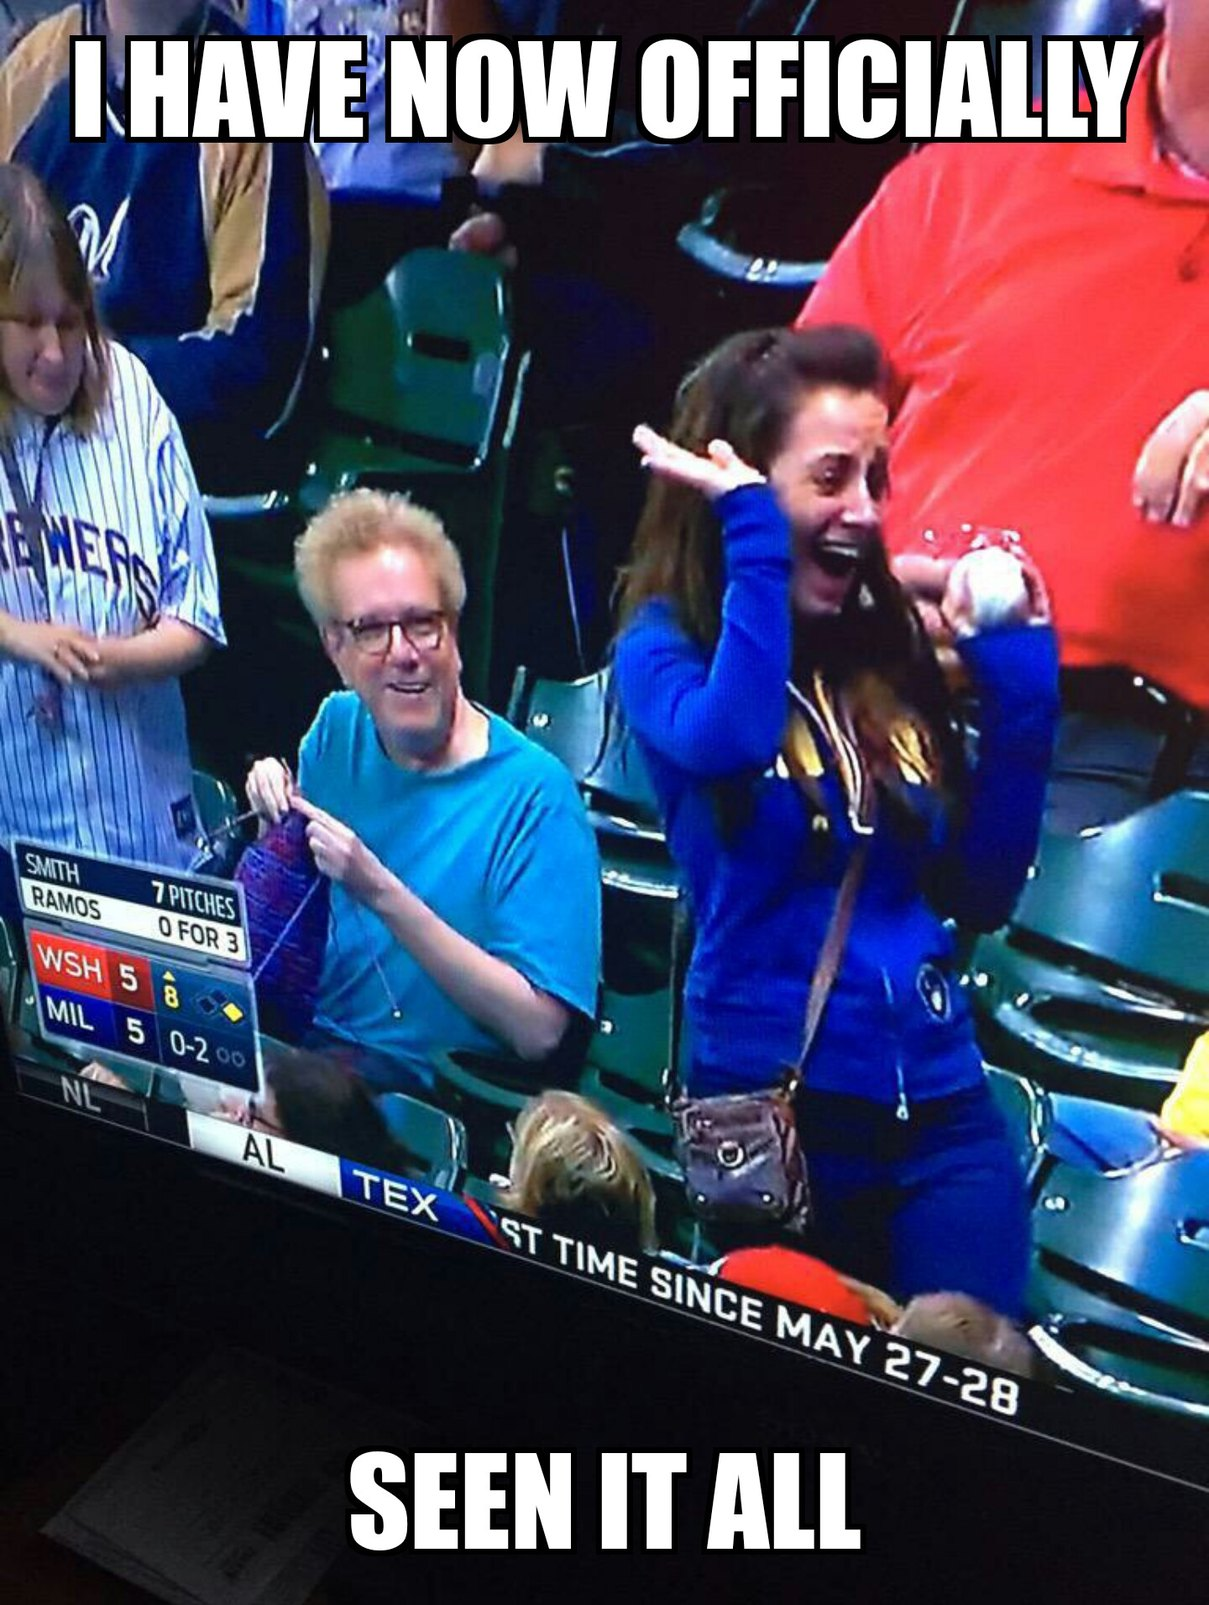 Guy knitting at an MLB game, my life is now complete - meme